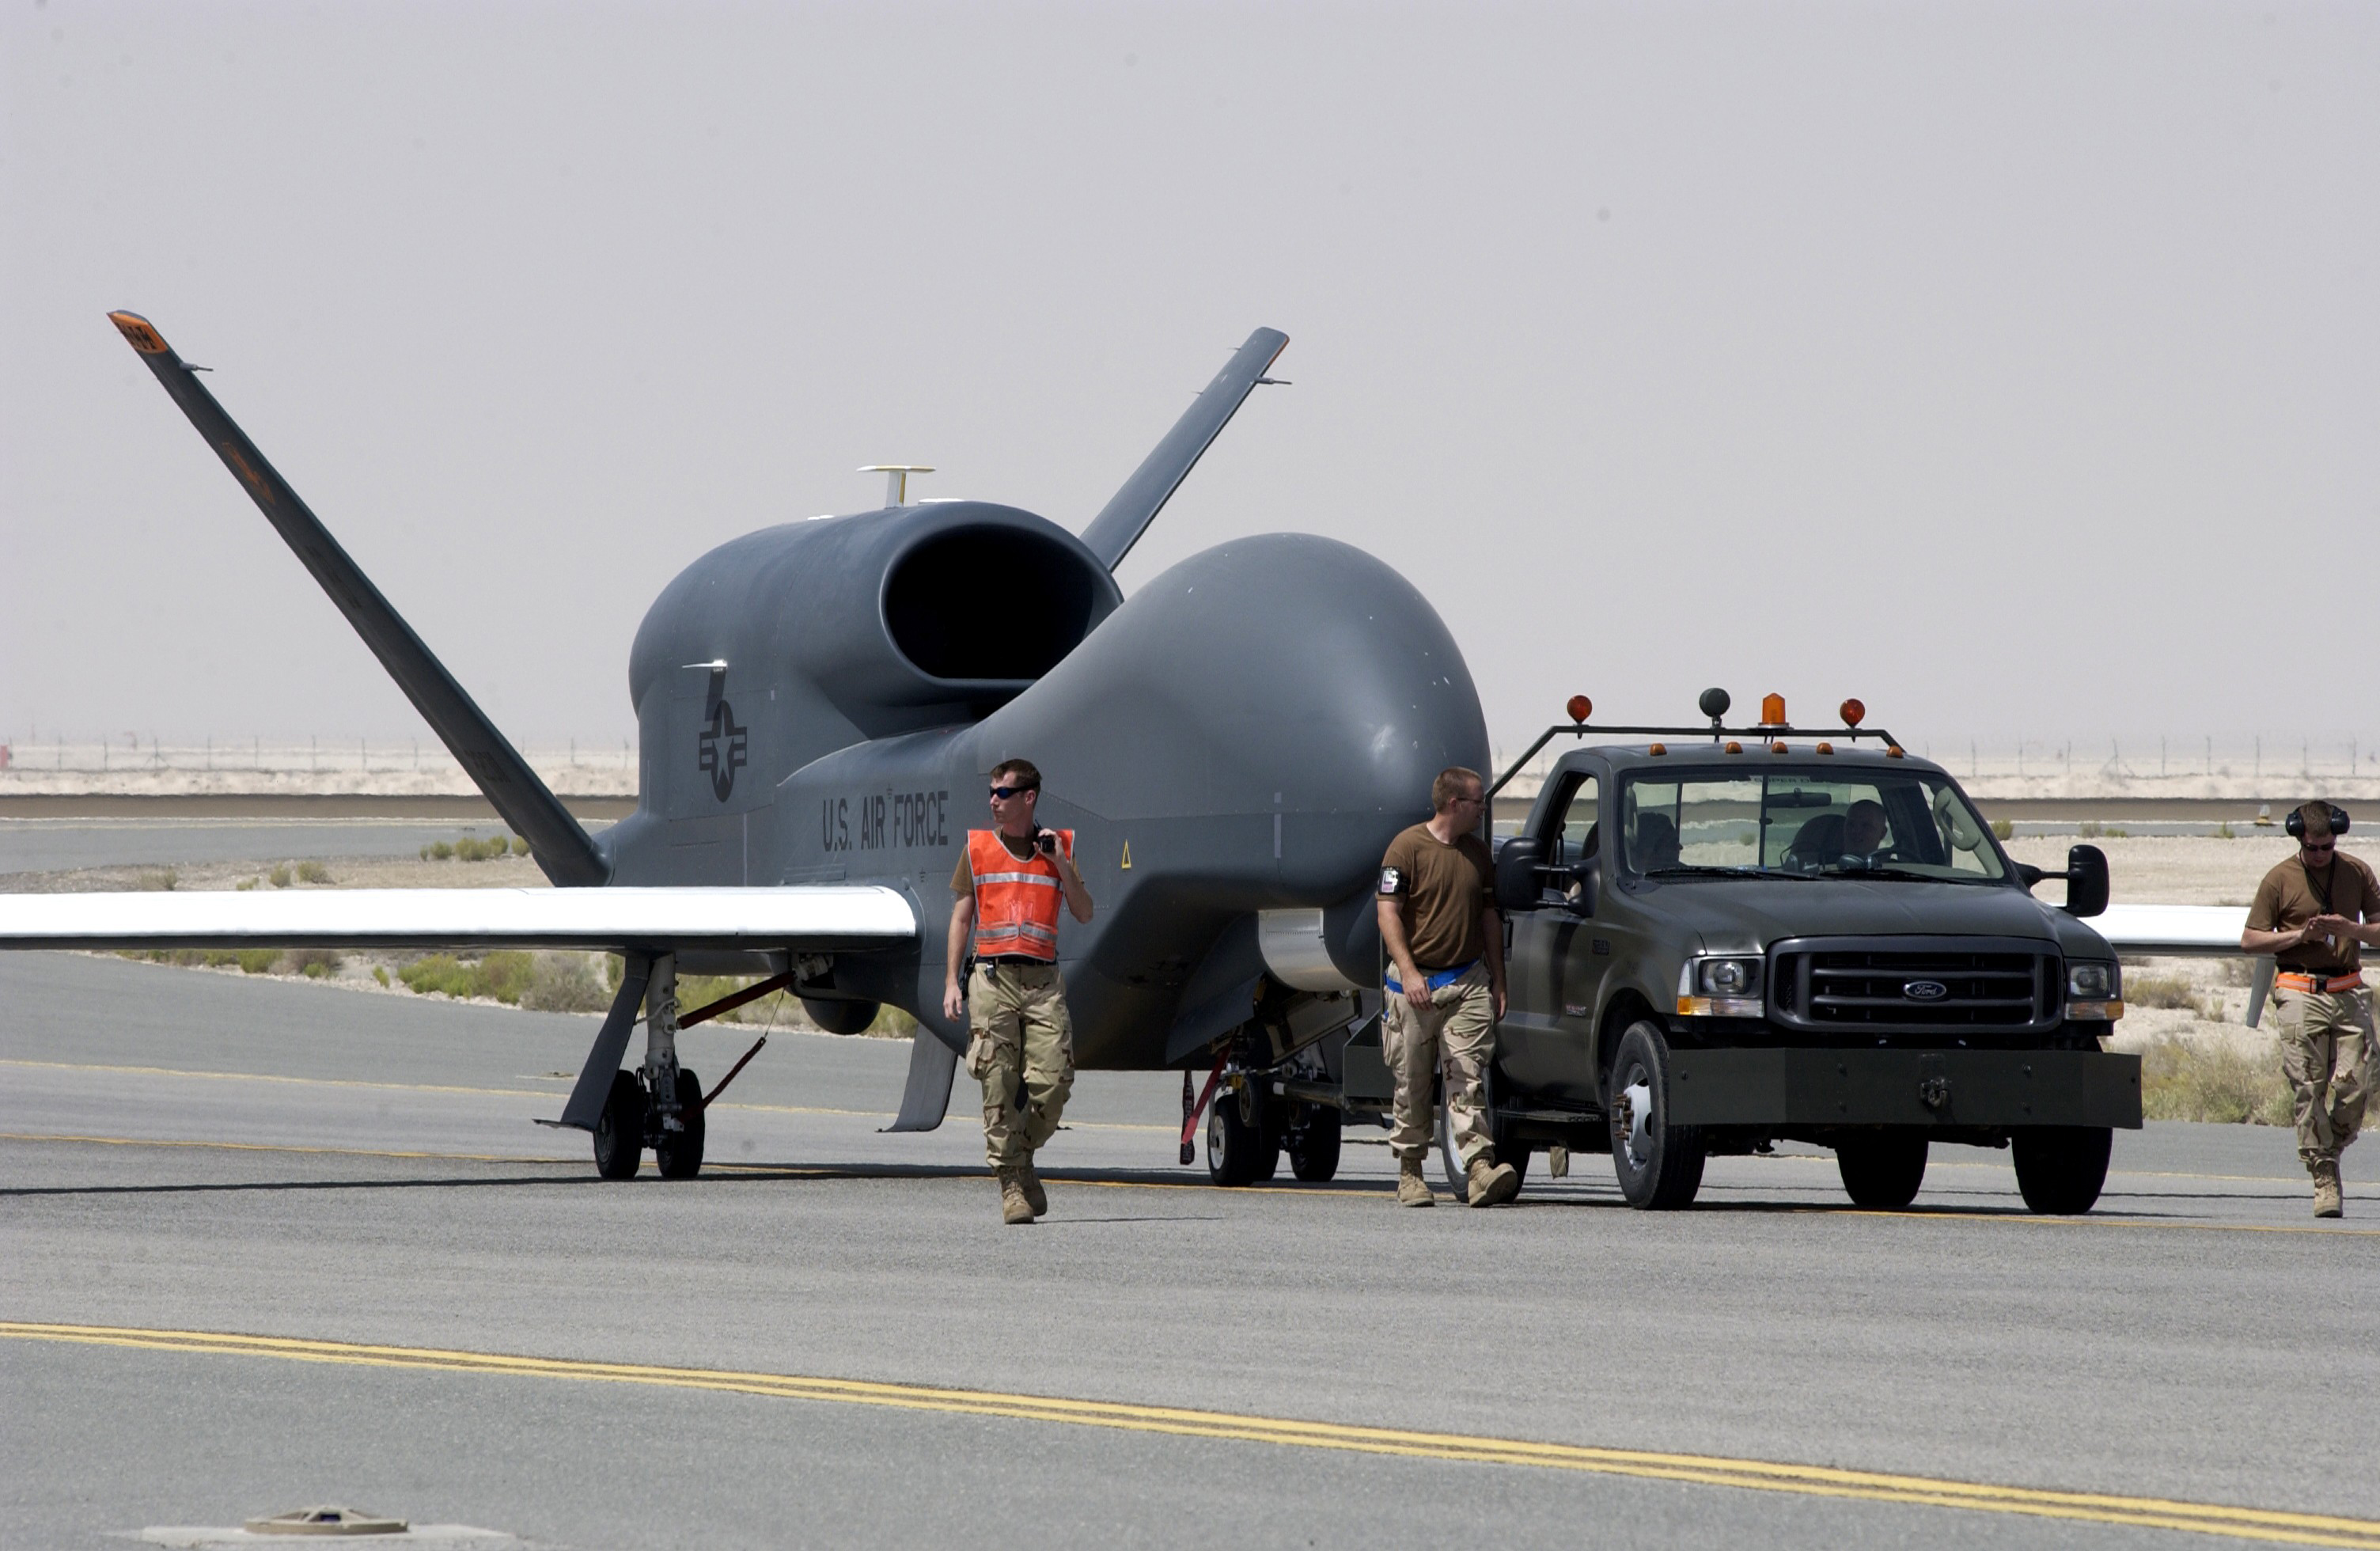 drone aircraft with File Rq 4 Global Hawk 3 on Drone squadrons of the united states air force likewise Stock Photo 1600 Ryan Xv 5 Vertifan Cut Away 71212559 together with FS 075 DFRC as well Tmotor Uav Brushless Motor Mt2208 1100kv in addition Bae Replica.